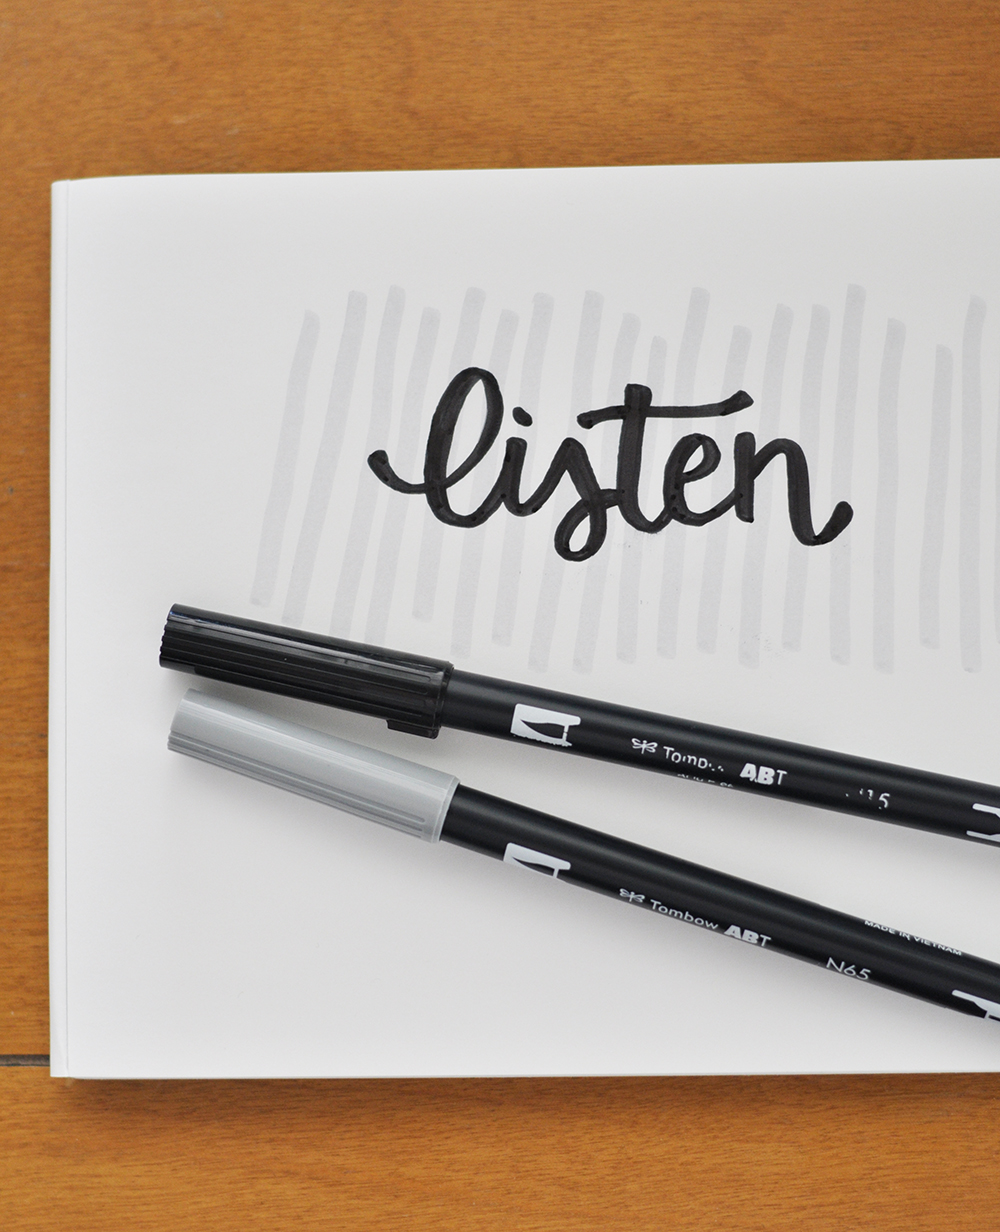 my mantra for april: LISTEN...to my children, my husband, my friends, and inspiration as it strikes